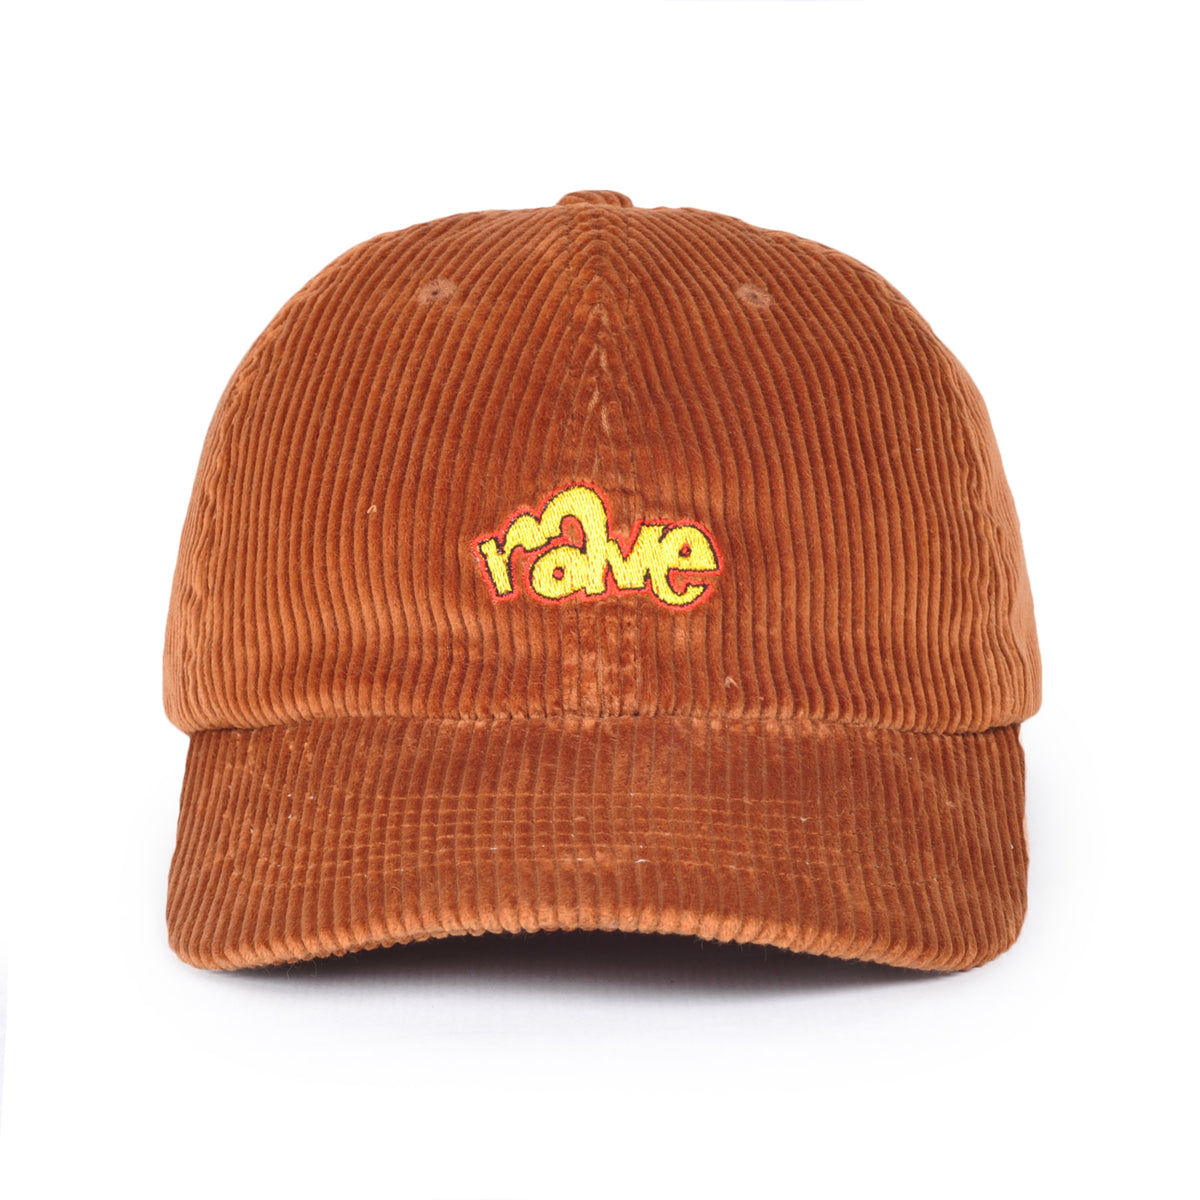 SPIKE cap cord camel - RAVE skateboards